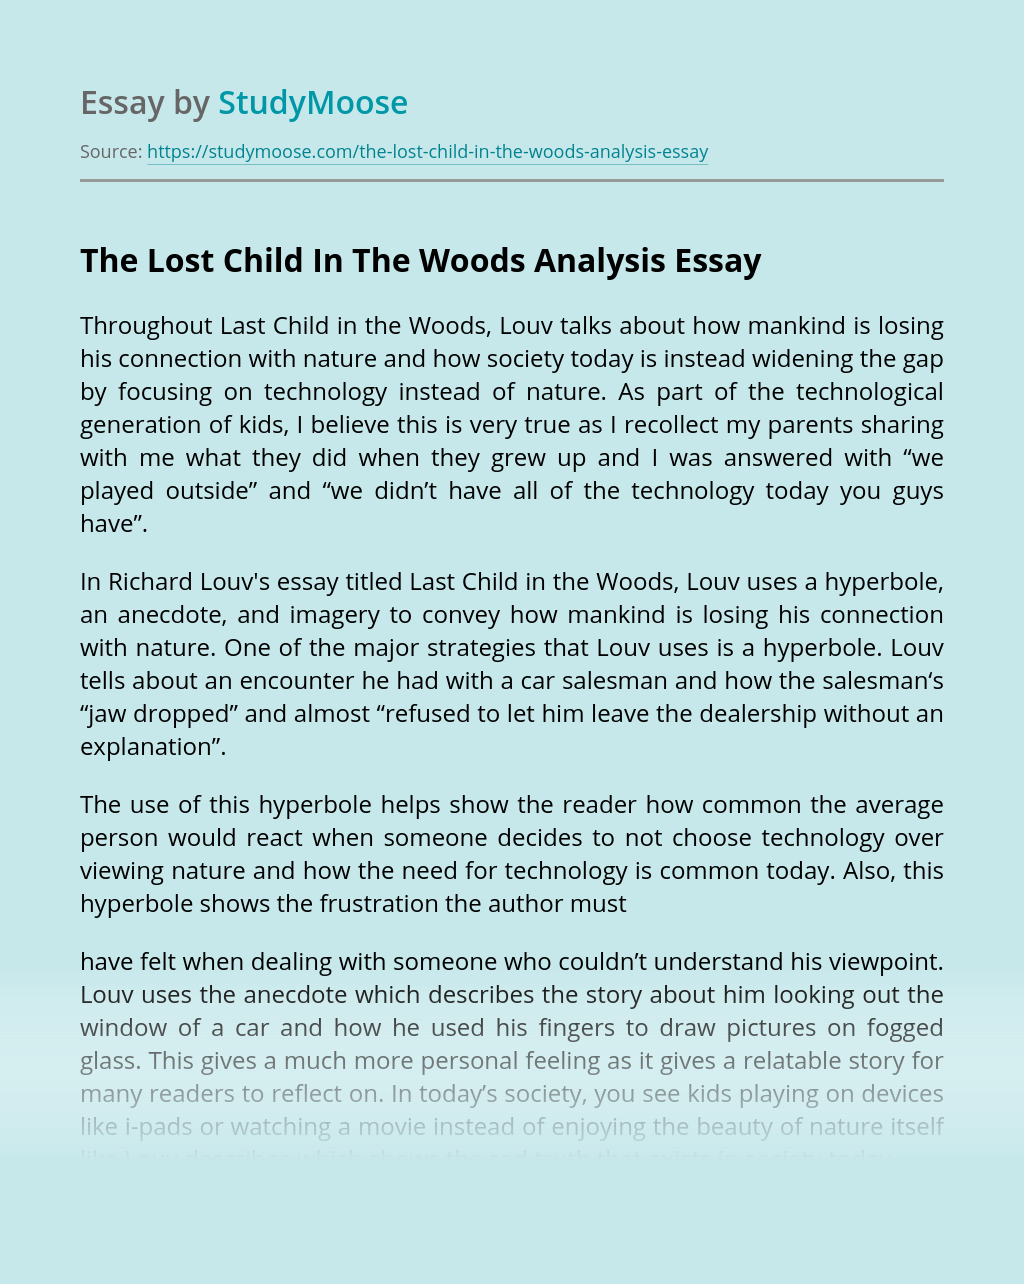 The Lost Child In The Woods Analysis